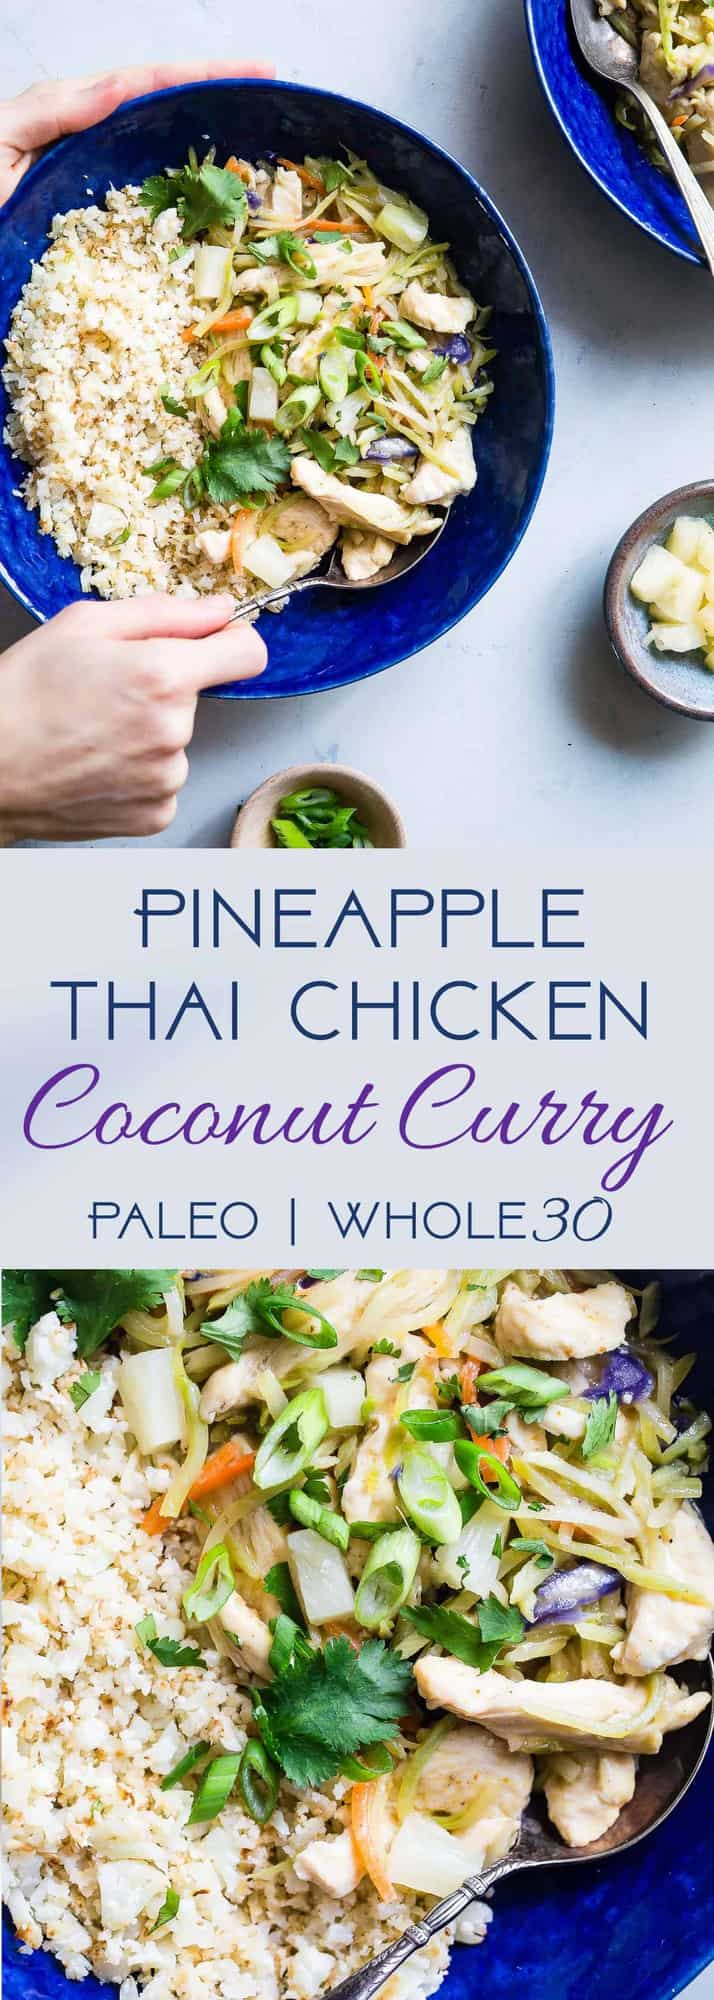 Paleo Thai Pineapple Chicken Curry - This quick and easy Paleo Chicken Curry uses coconut milk to make it extra creamy, and is naturally sweetened with pineapple! It's a spicy-sweet dinner that is gluten/grain/dairy/sugar free and whole30 compliant! | #Foodfaithfitness | #Whole30 #Glutenfree #Paleo #Curry #Dairyfree